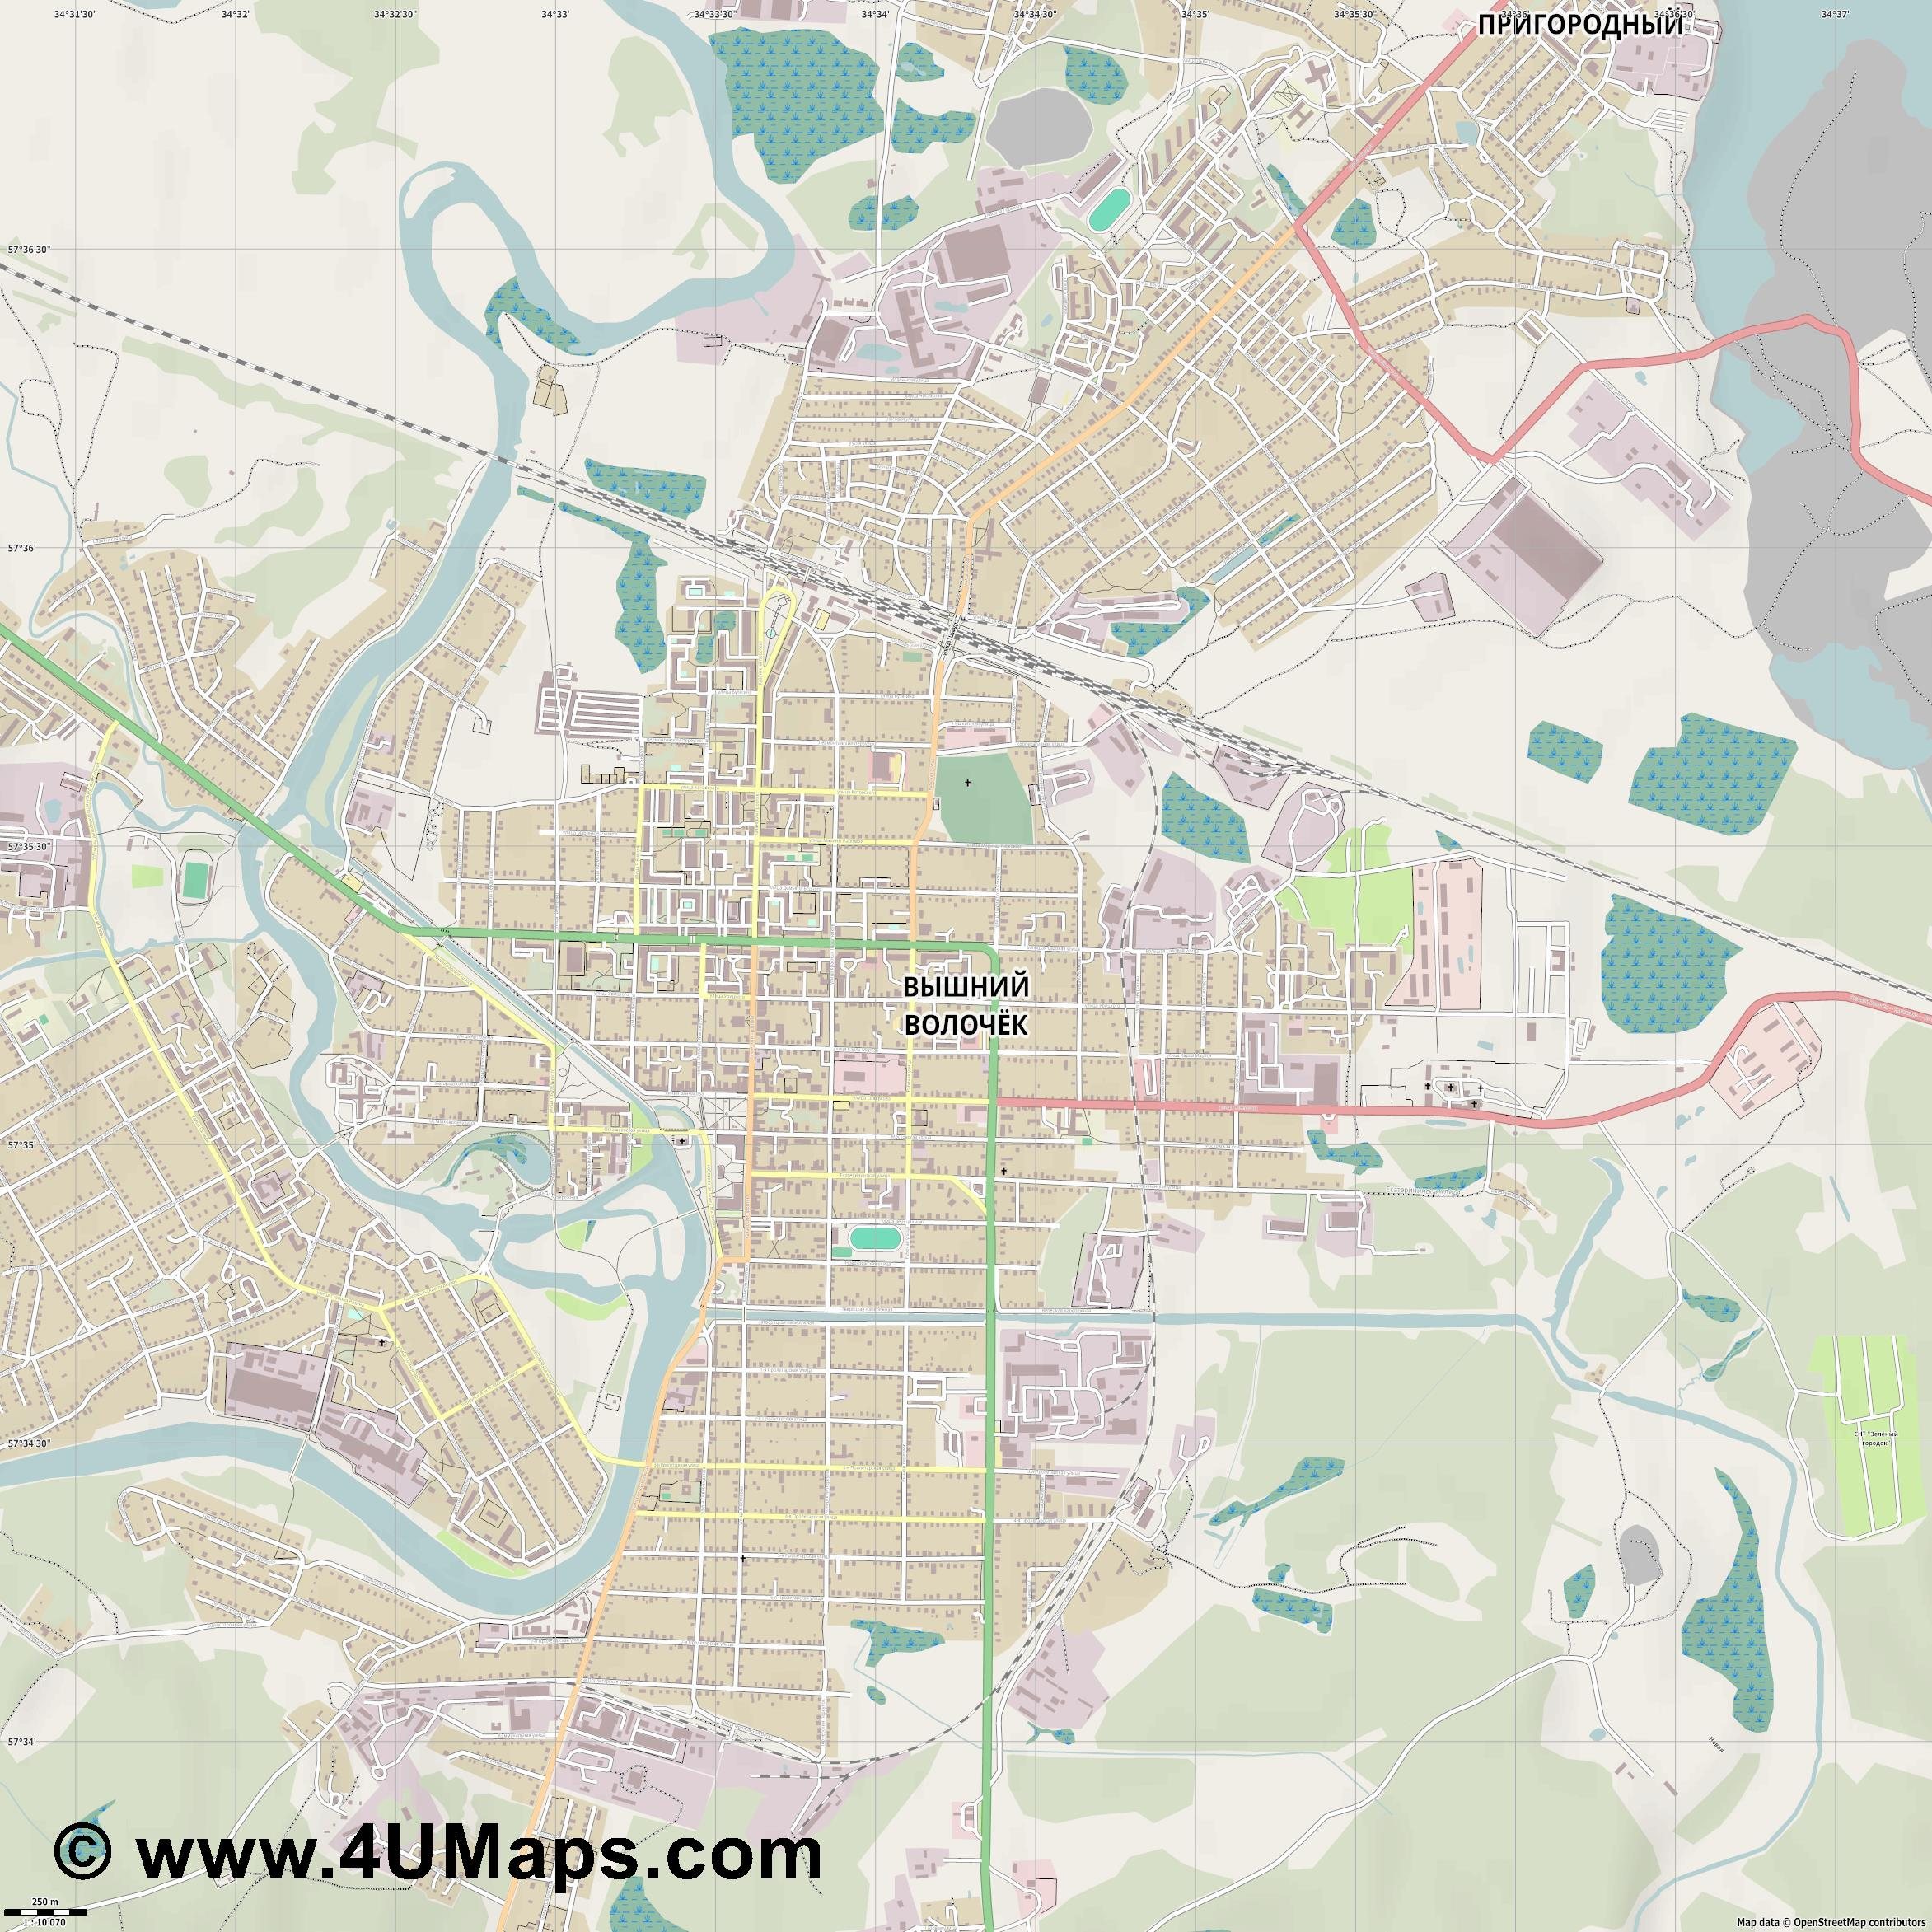 Вышний Волочек Vysnij Volocek Wyschni Wolotschok  jpg ultra high detail preview vector city map